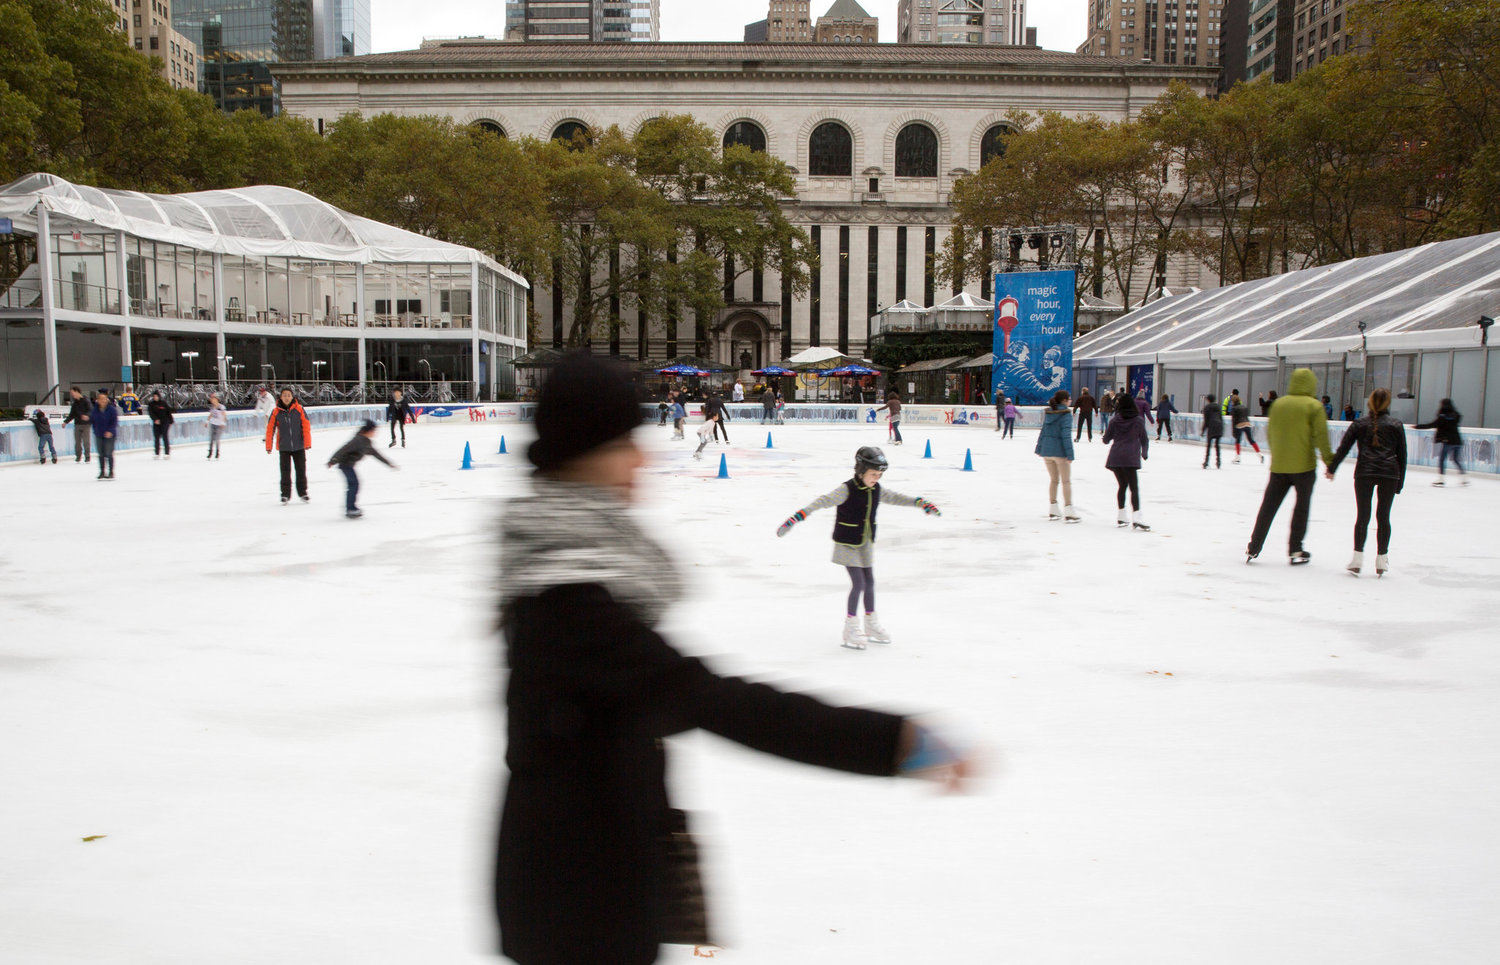 Behind the library, under Bryant Park and the skating rink, a complex storage space is taking shape.